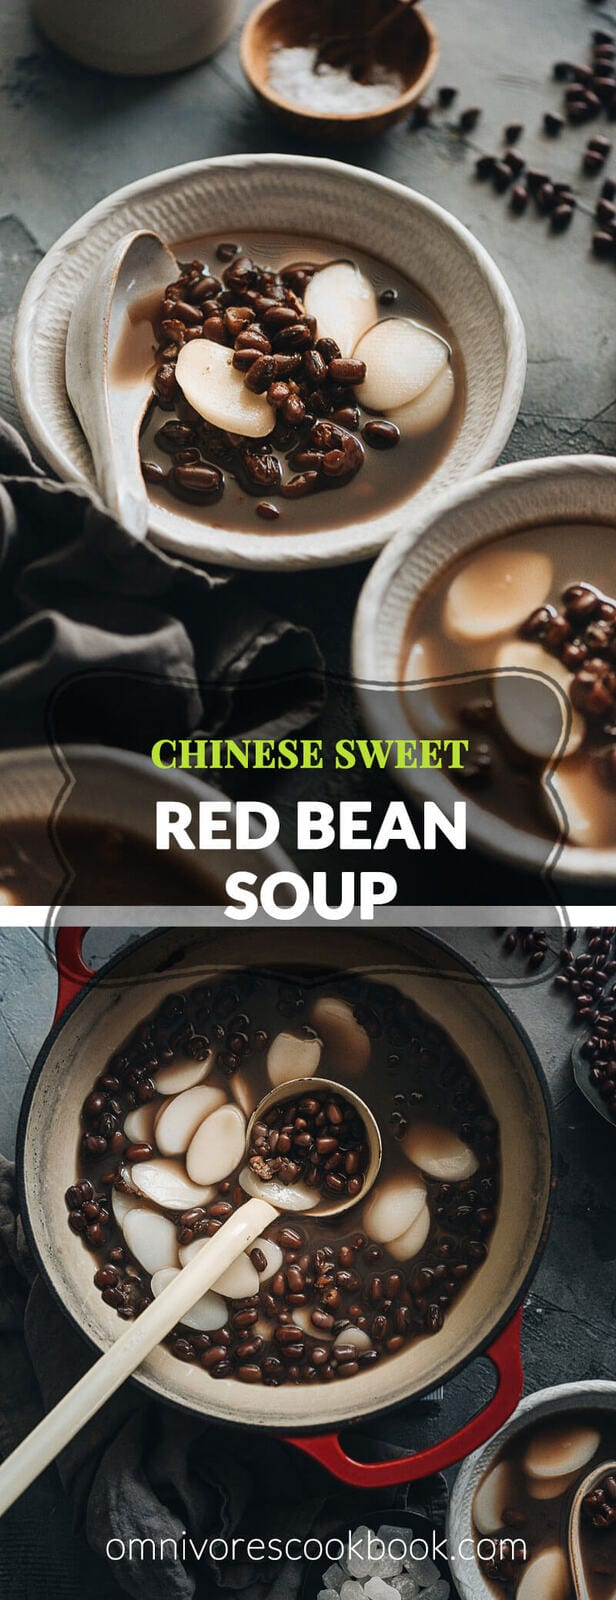 Red bean soup - This traditional Chinese dessert is slightly sweet, with the mild fragrance of the beans and chewy texture of the sticky rice cakes. It's very easy to prepare and healthy. Plus, it's vegan and gluten-free. #recipes